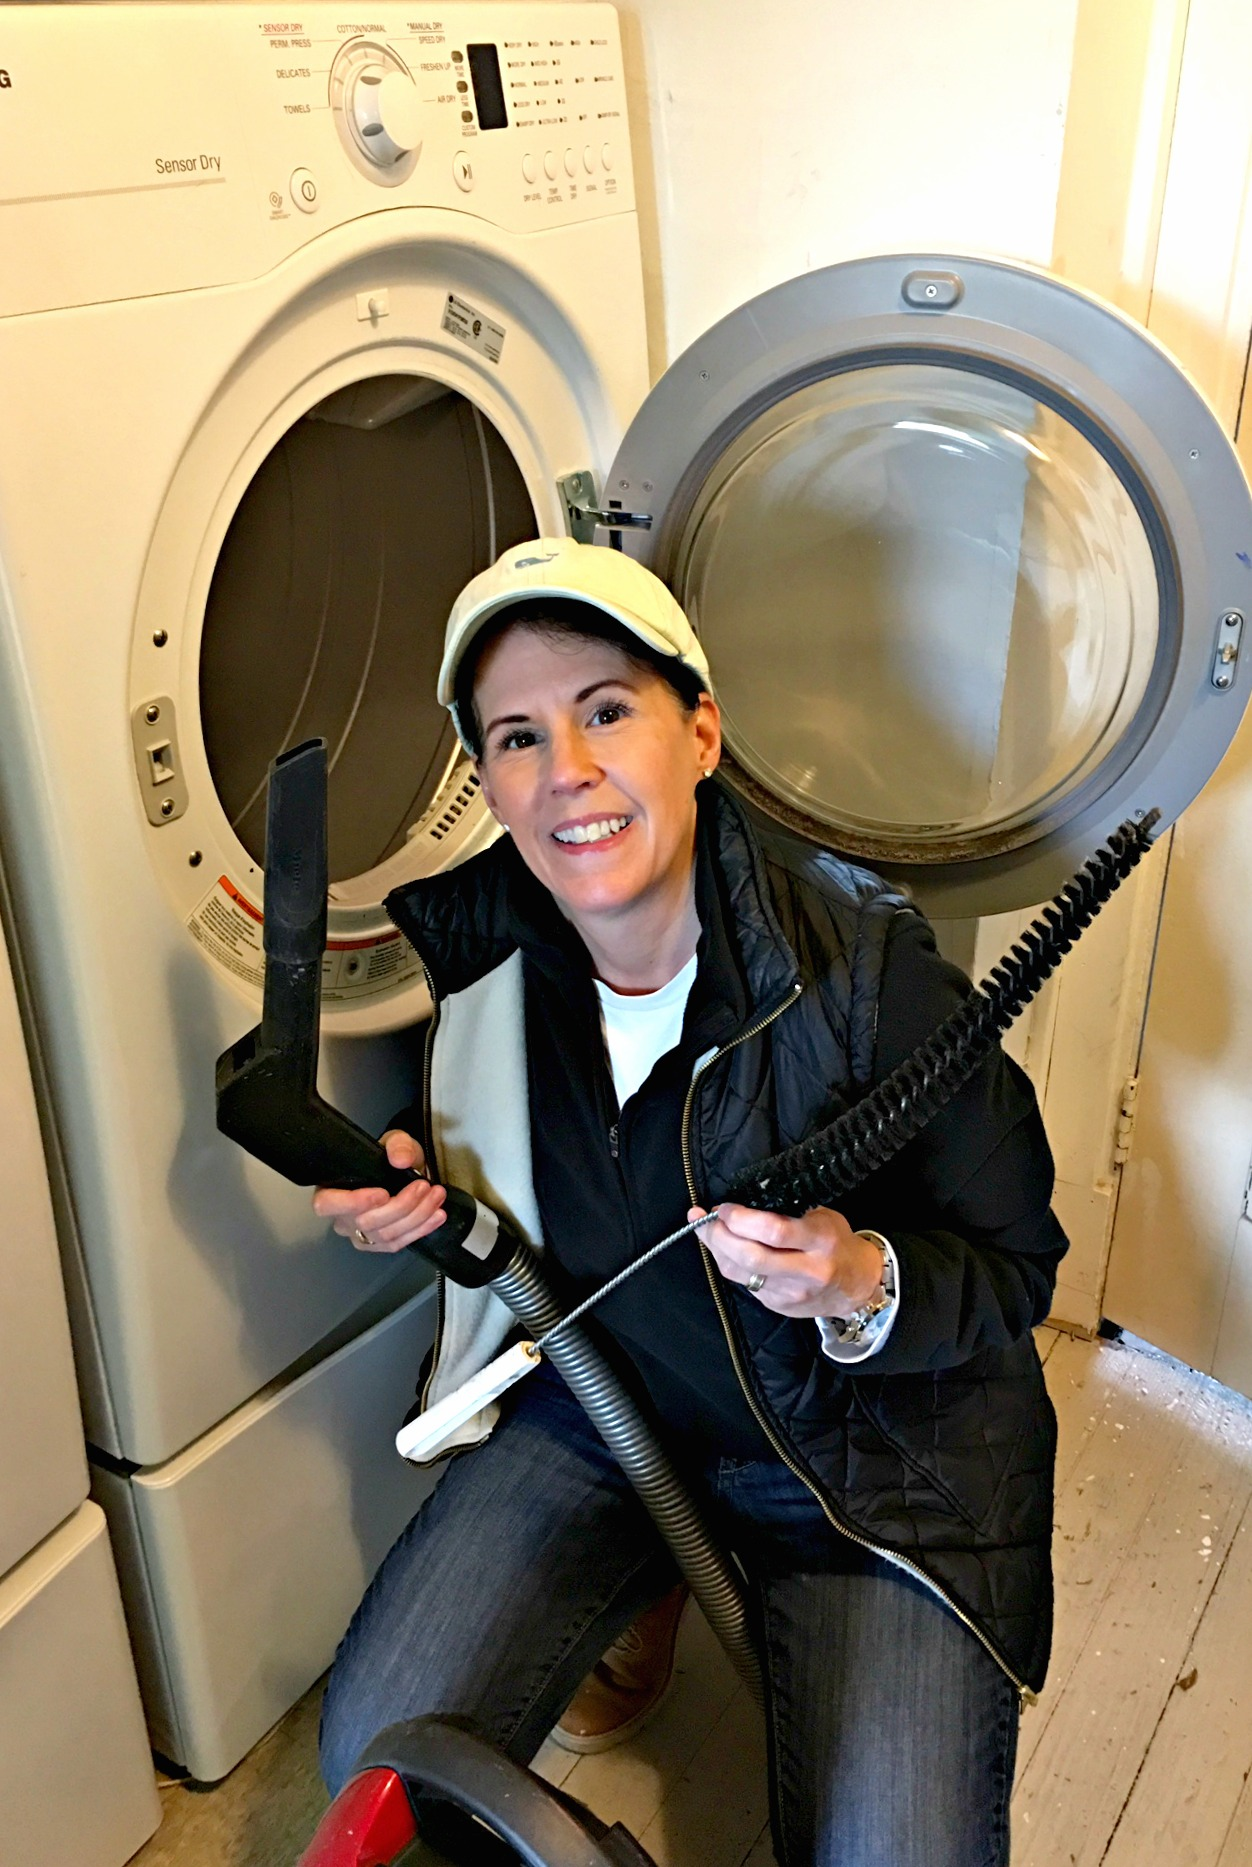 Have You Vacuumed Your Dryer Lately?